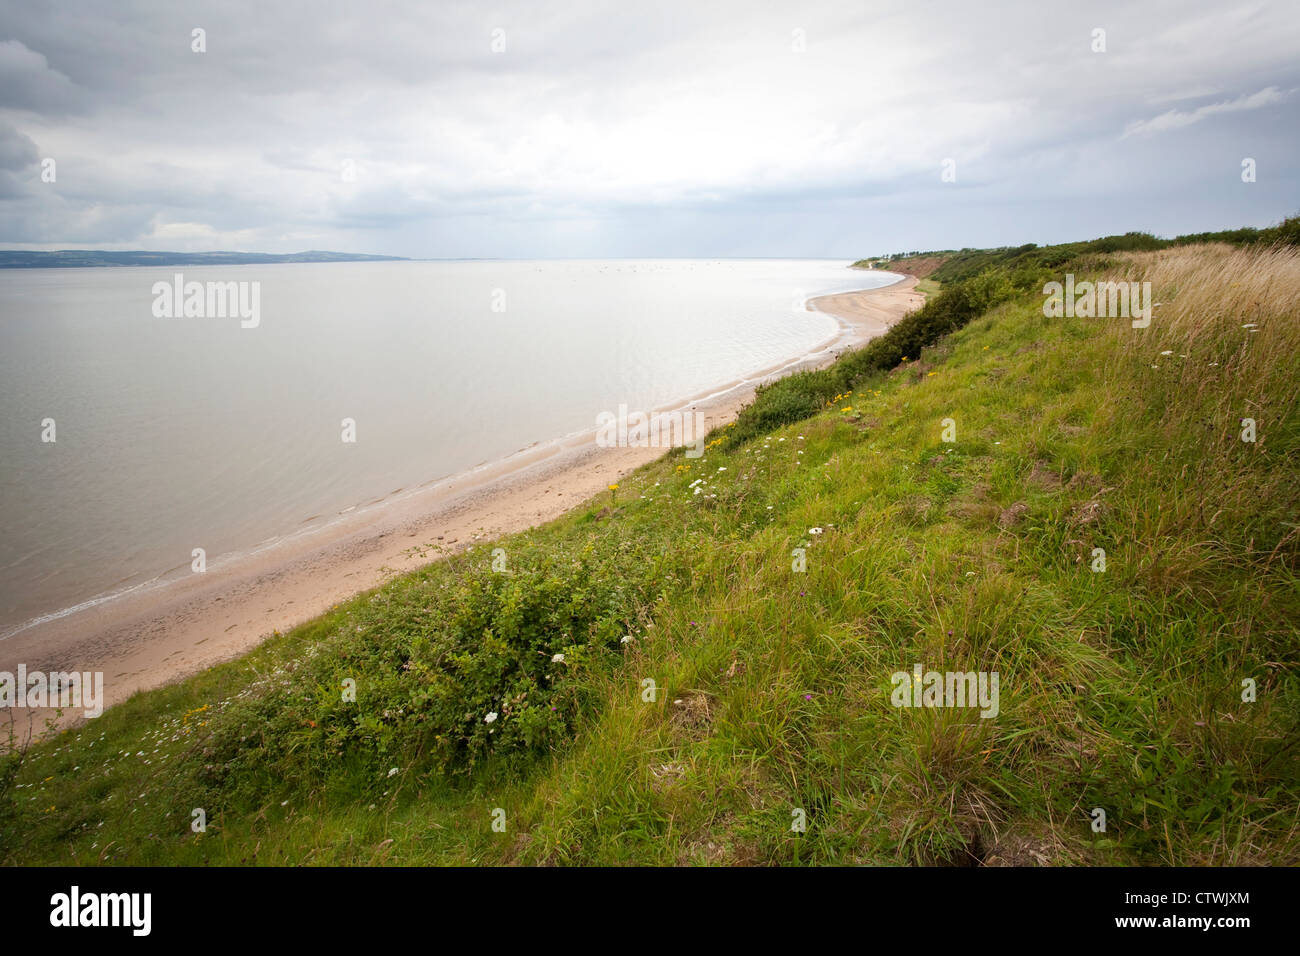 Looking North West along the Dee Estuary from the cliffs at Thurstaston on The Wirral Peninsula - Stock Image